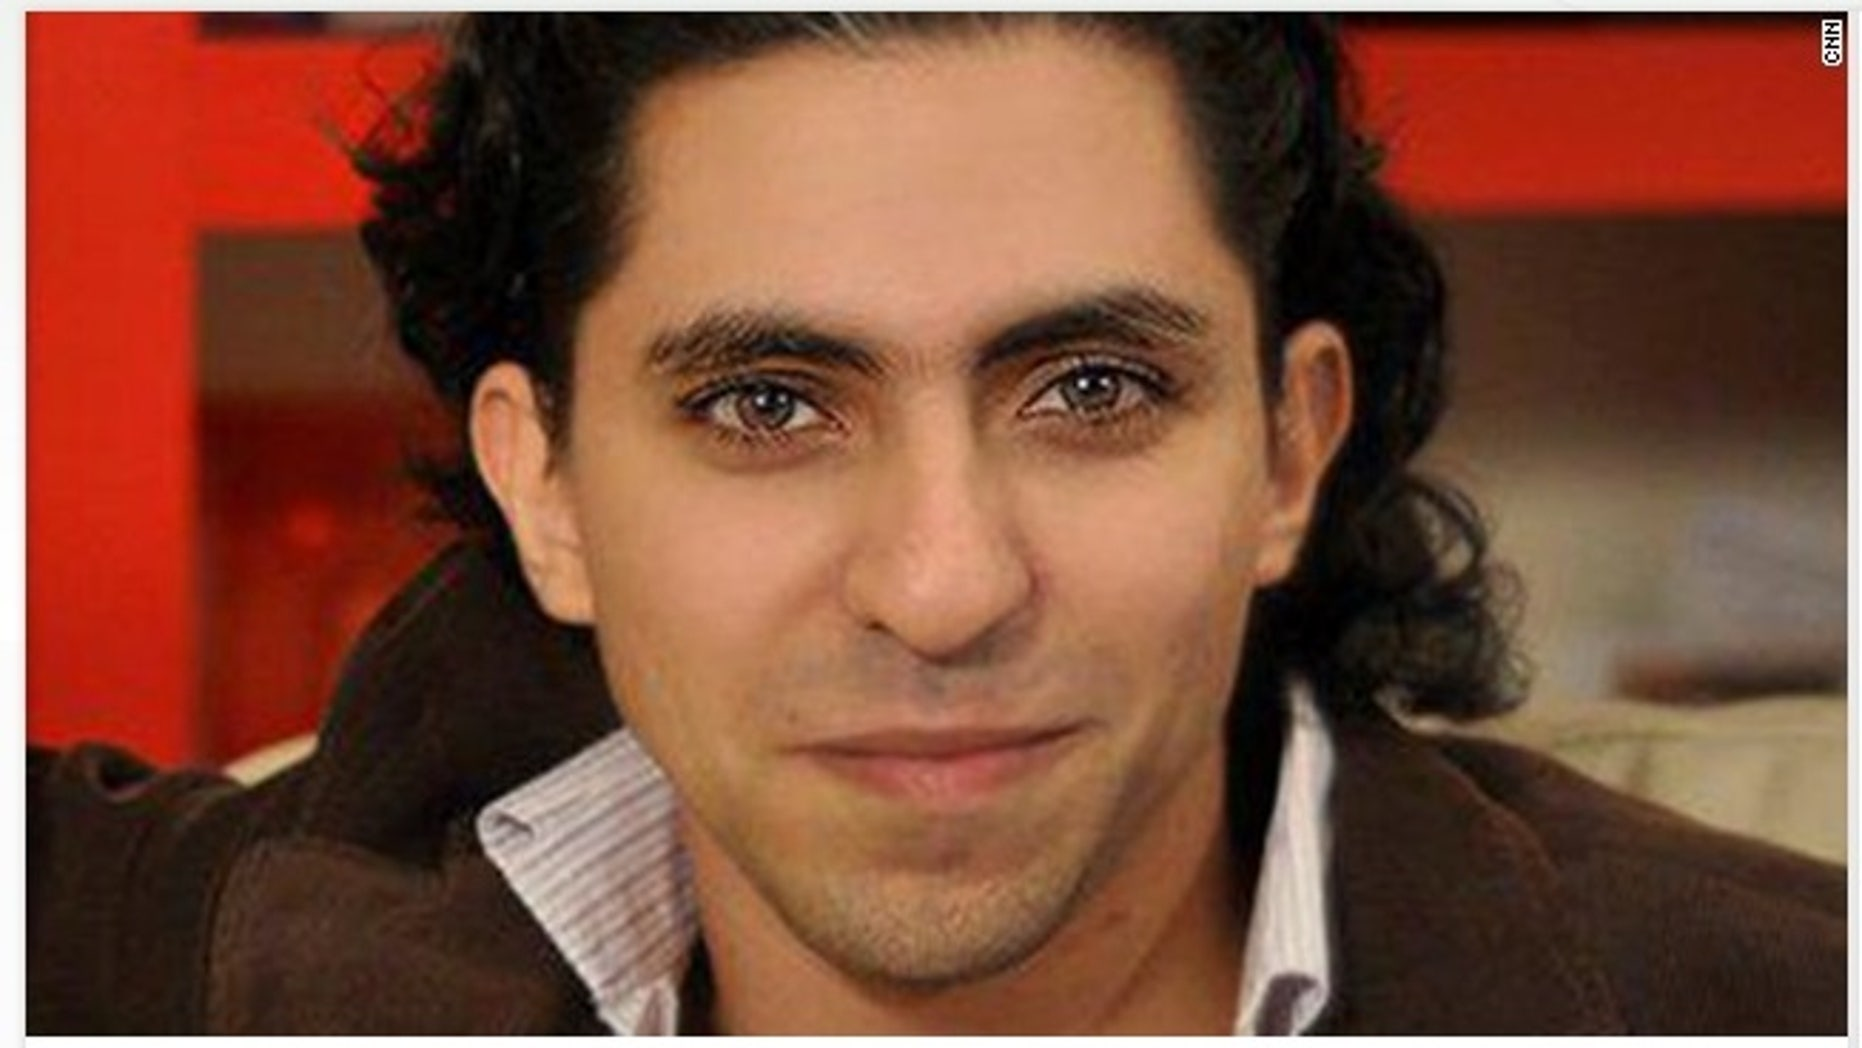 """Raif Badawi, co-founder of the """"Saudi Arabian Liberals"""" has been sentenced to 10 years in prison and 1,000 lashes for """"insulting Islam."""" (Reuters)"""